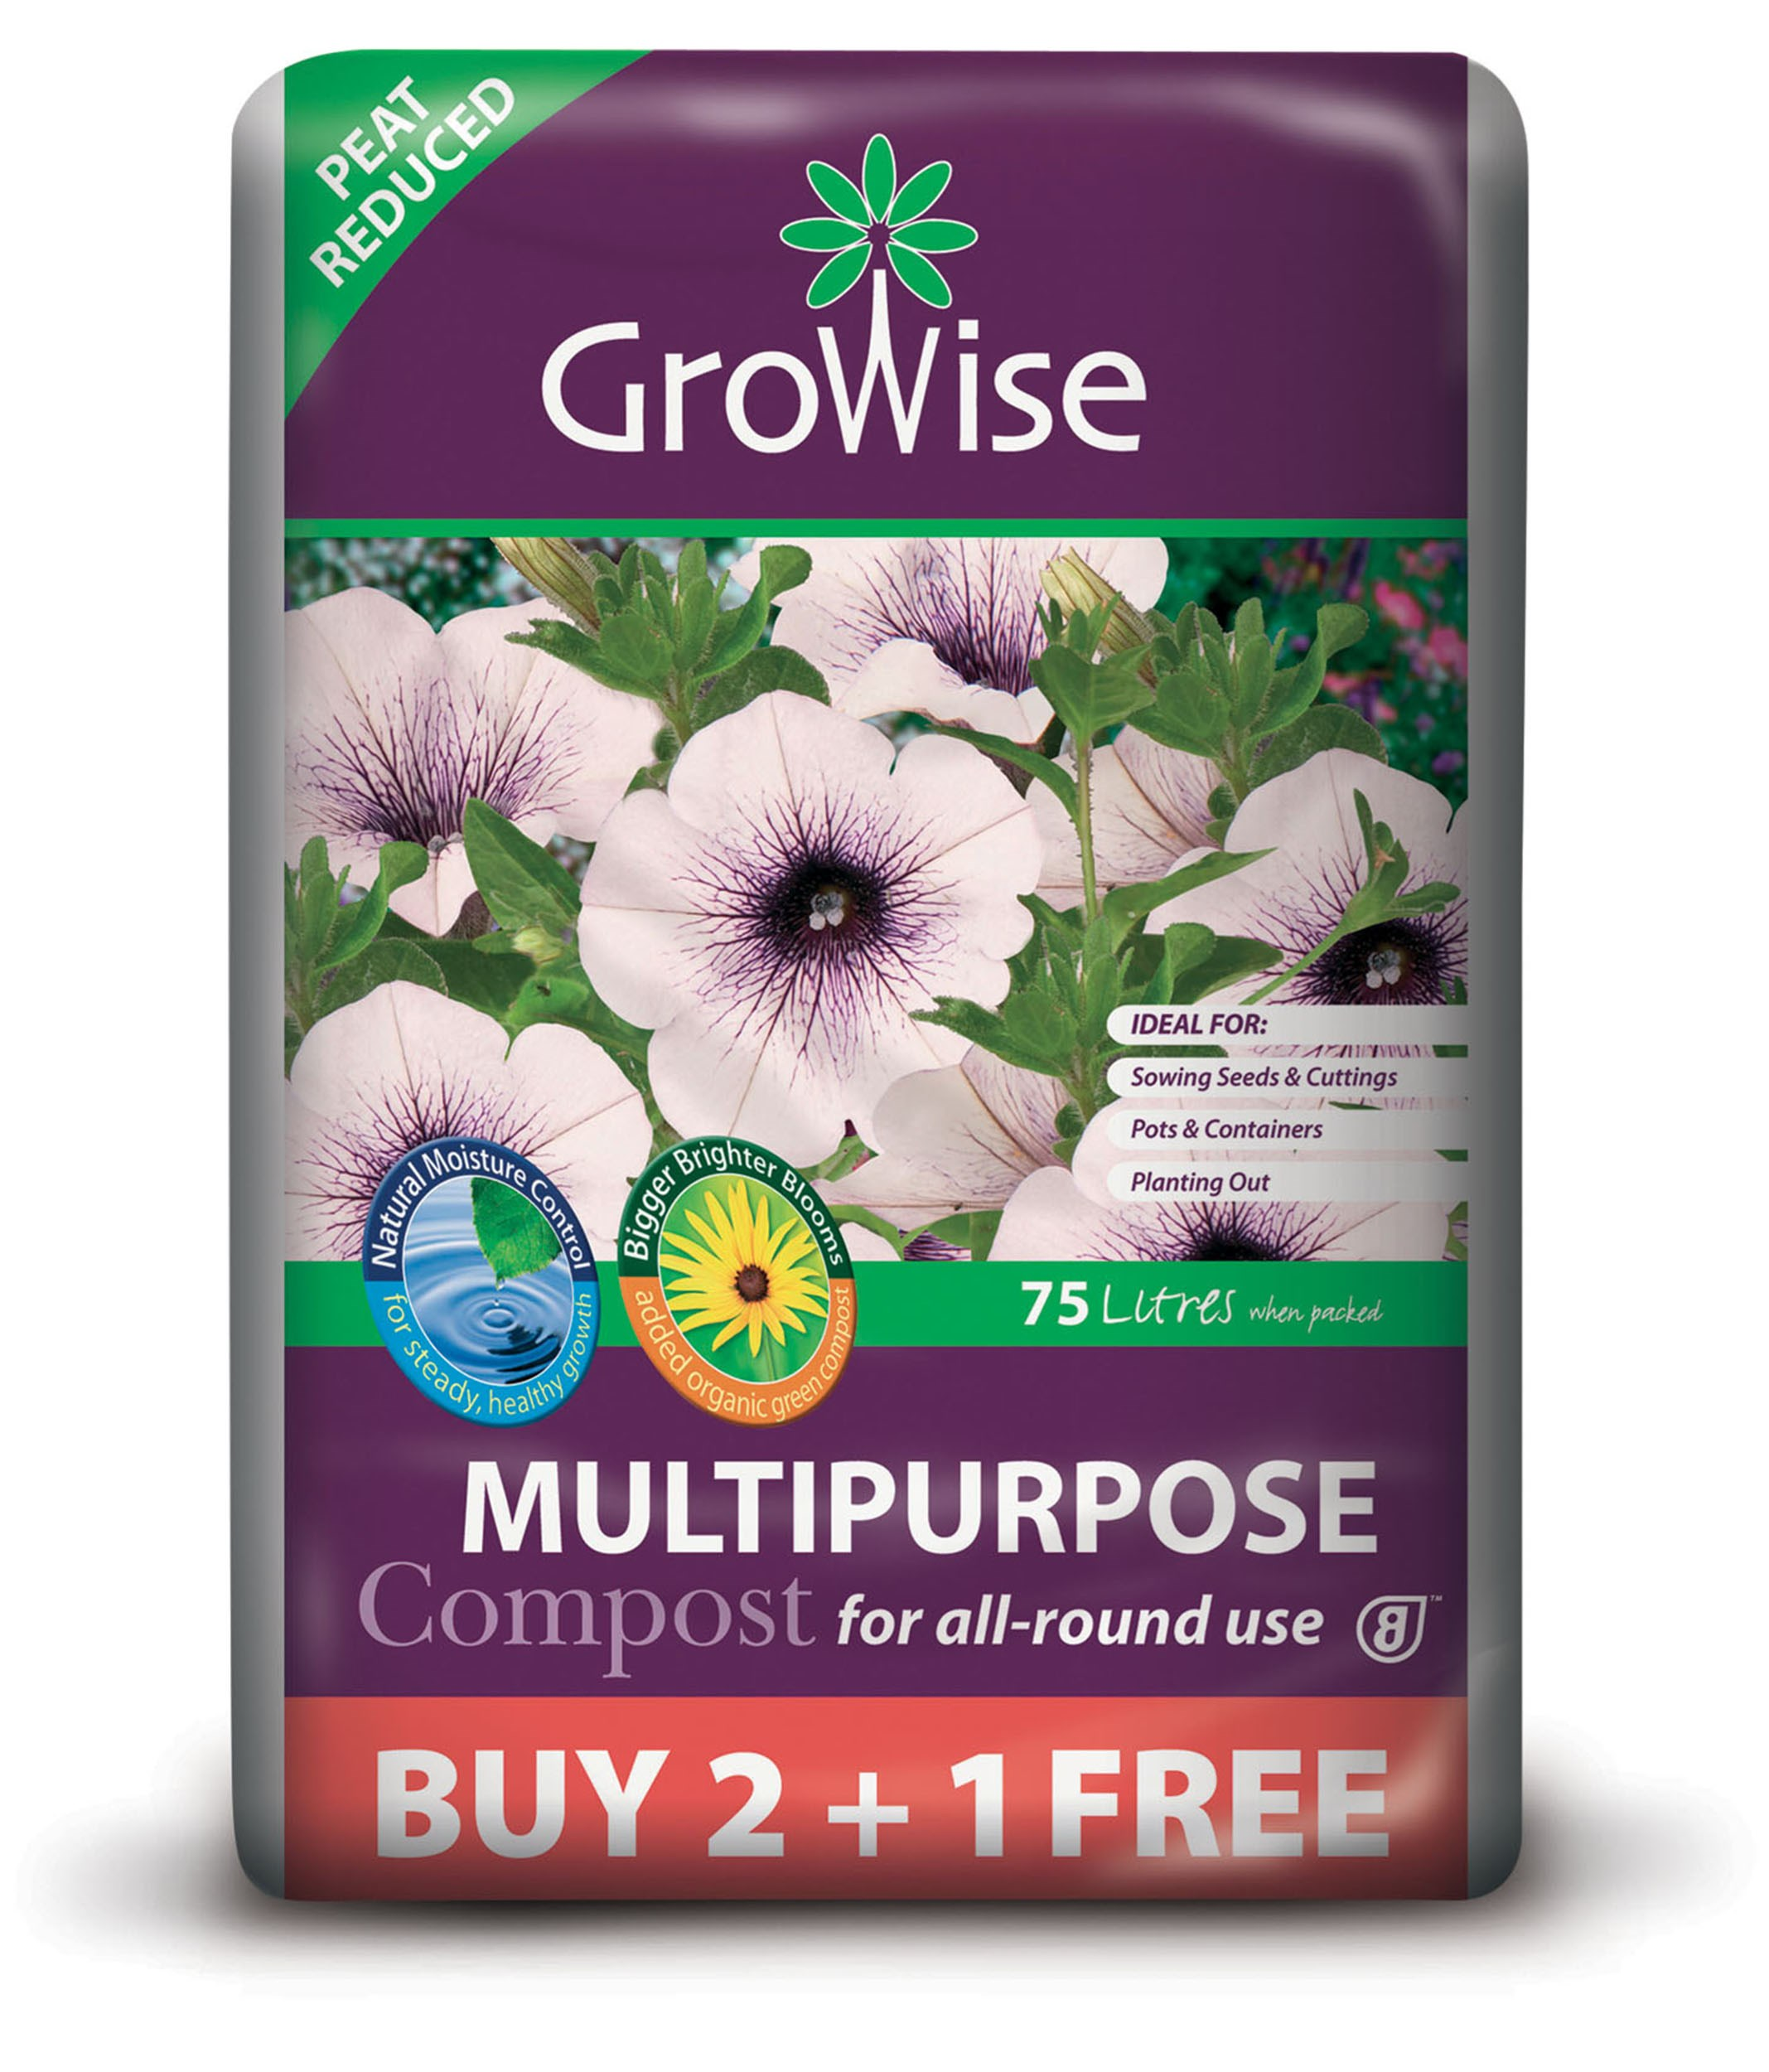 Bord na Móna Growise Multi-Purpose Compost 75 Litre - Buy 2 Get 1 Free